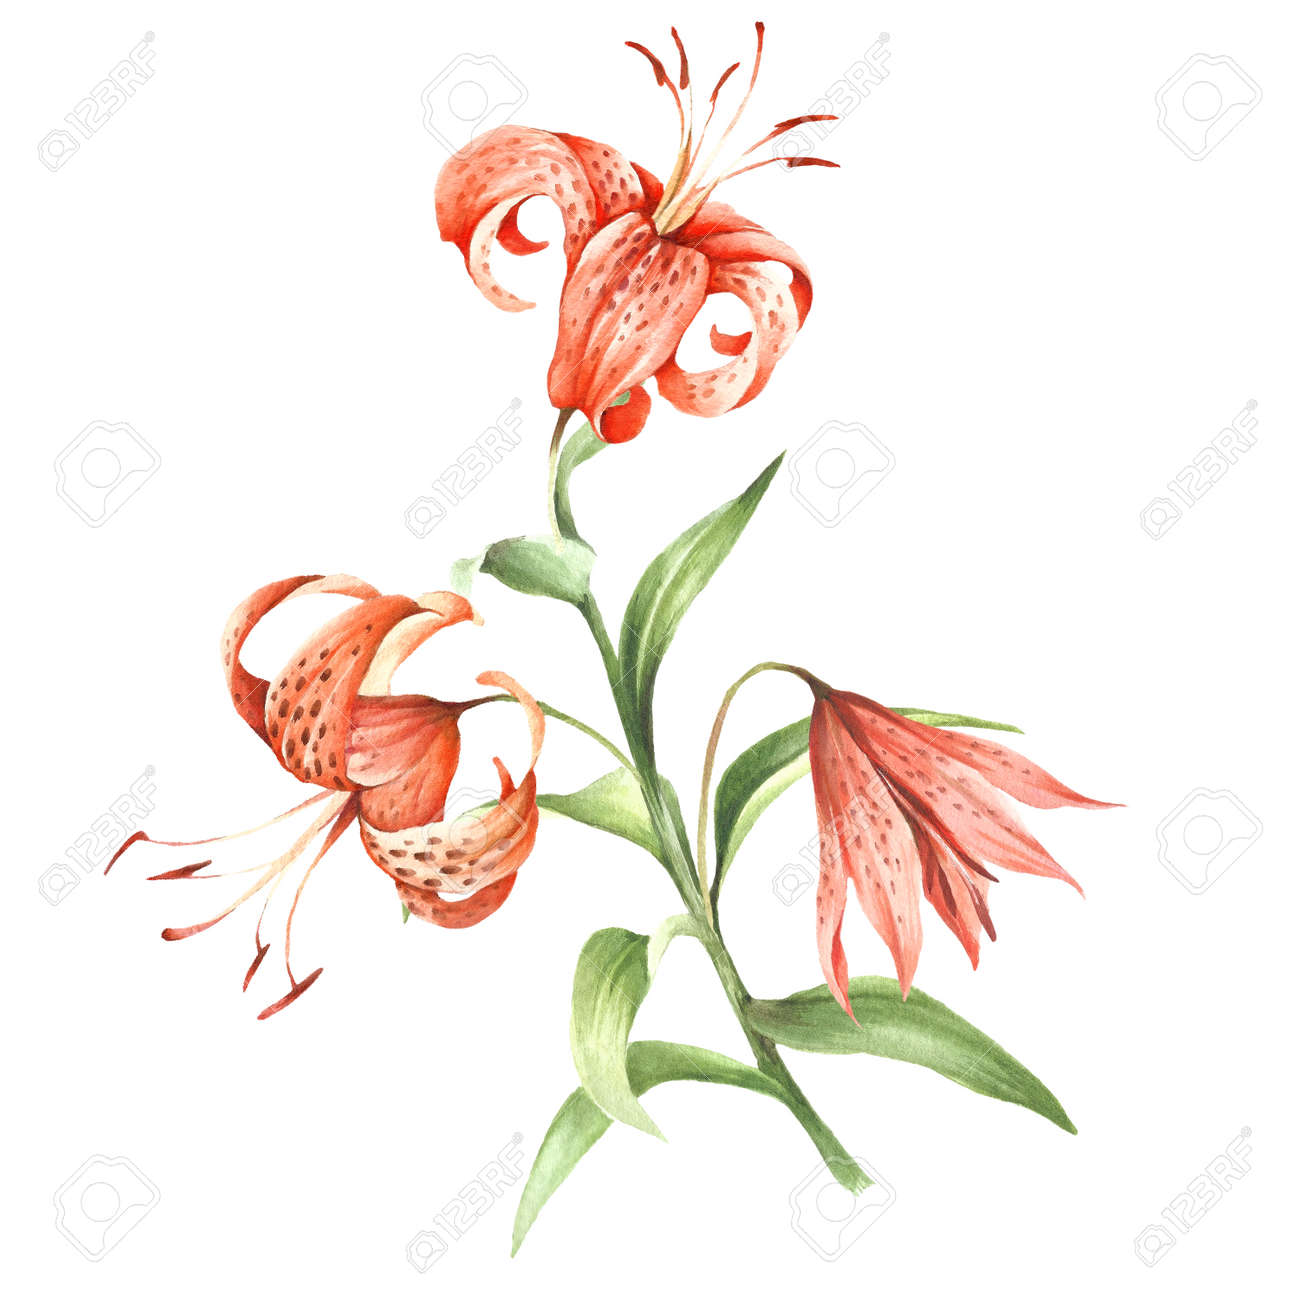 Image Tiger Lily Flowers Hand Draw Watercolor Illustration Stock